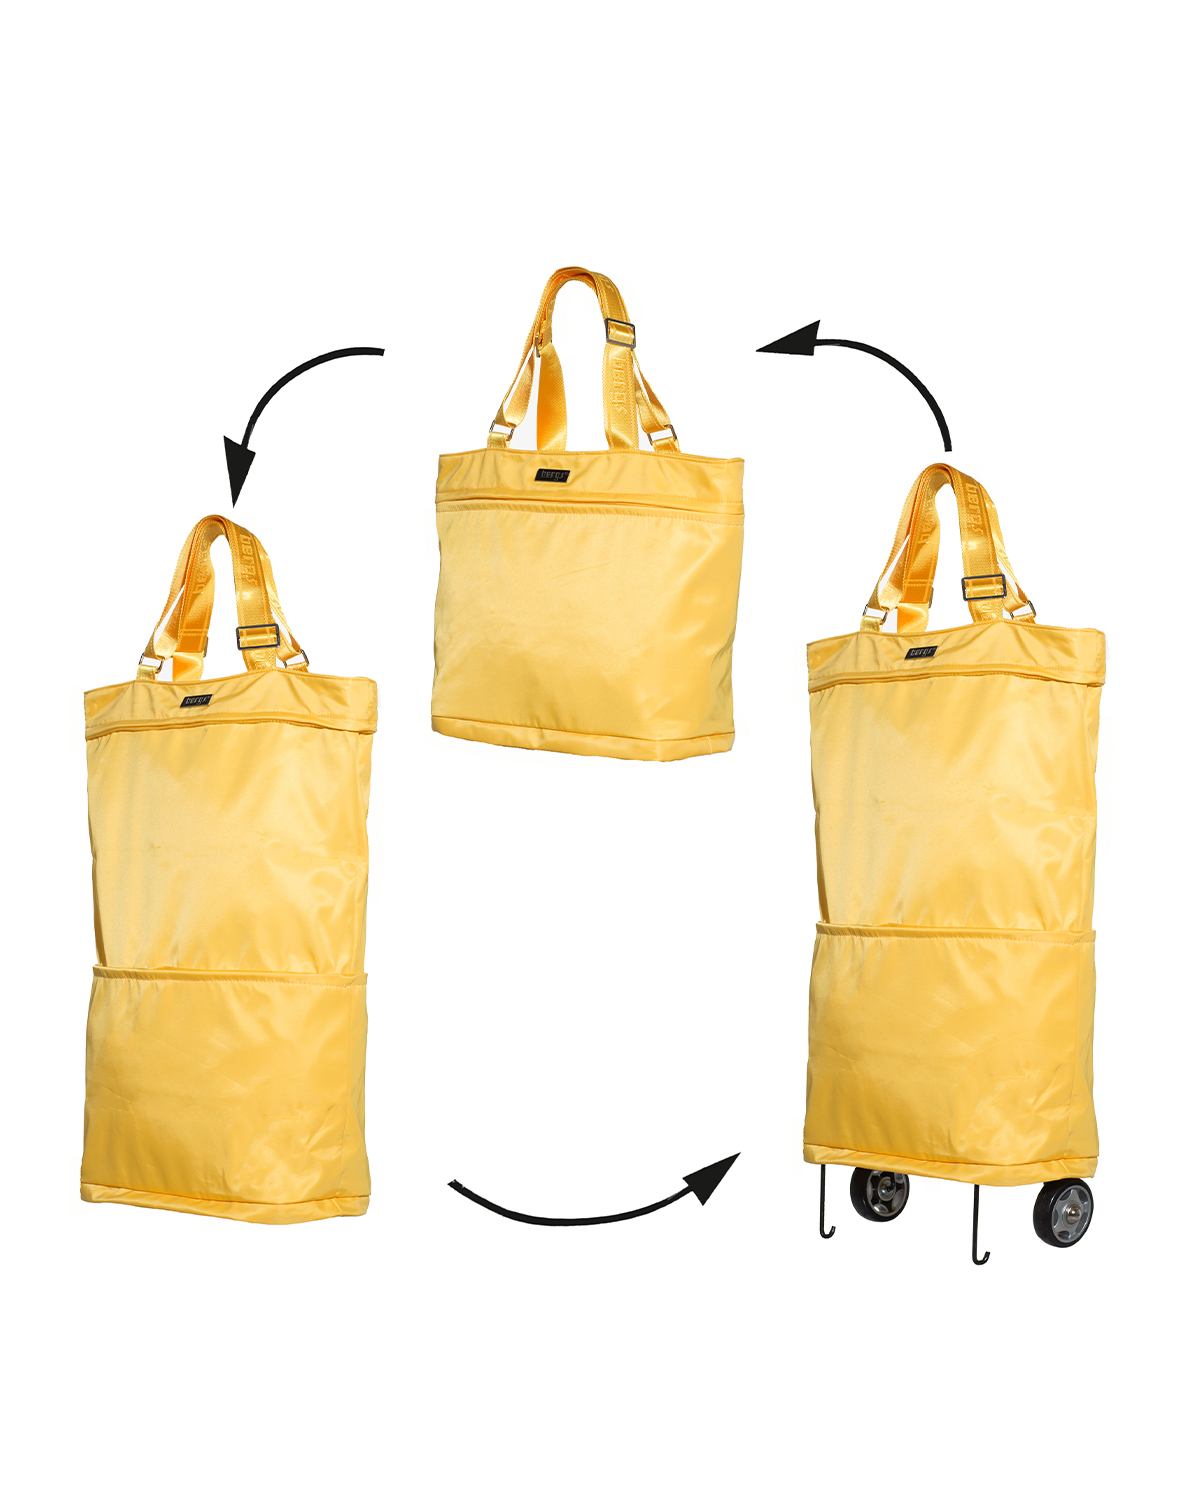 Bergs3in1 Multifunctional Women's Bag Polyester Yellow